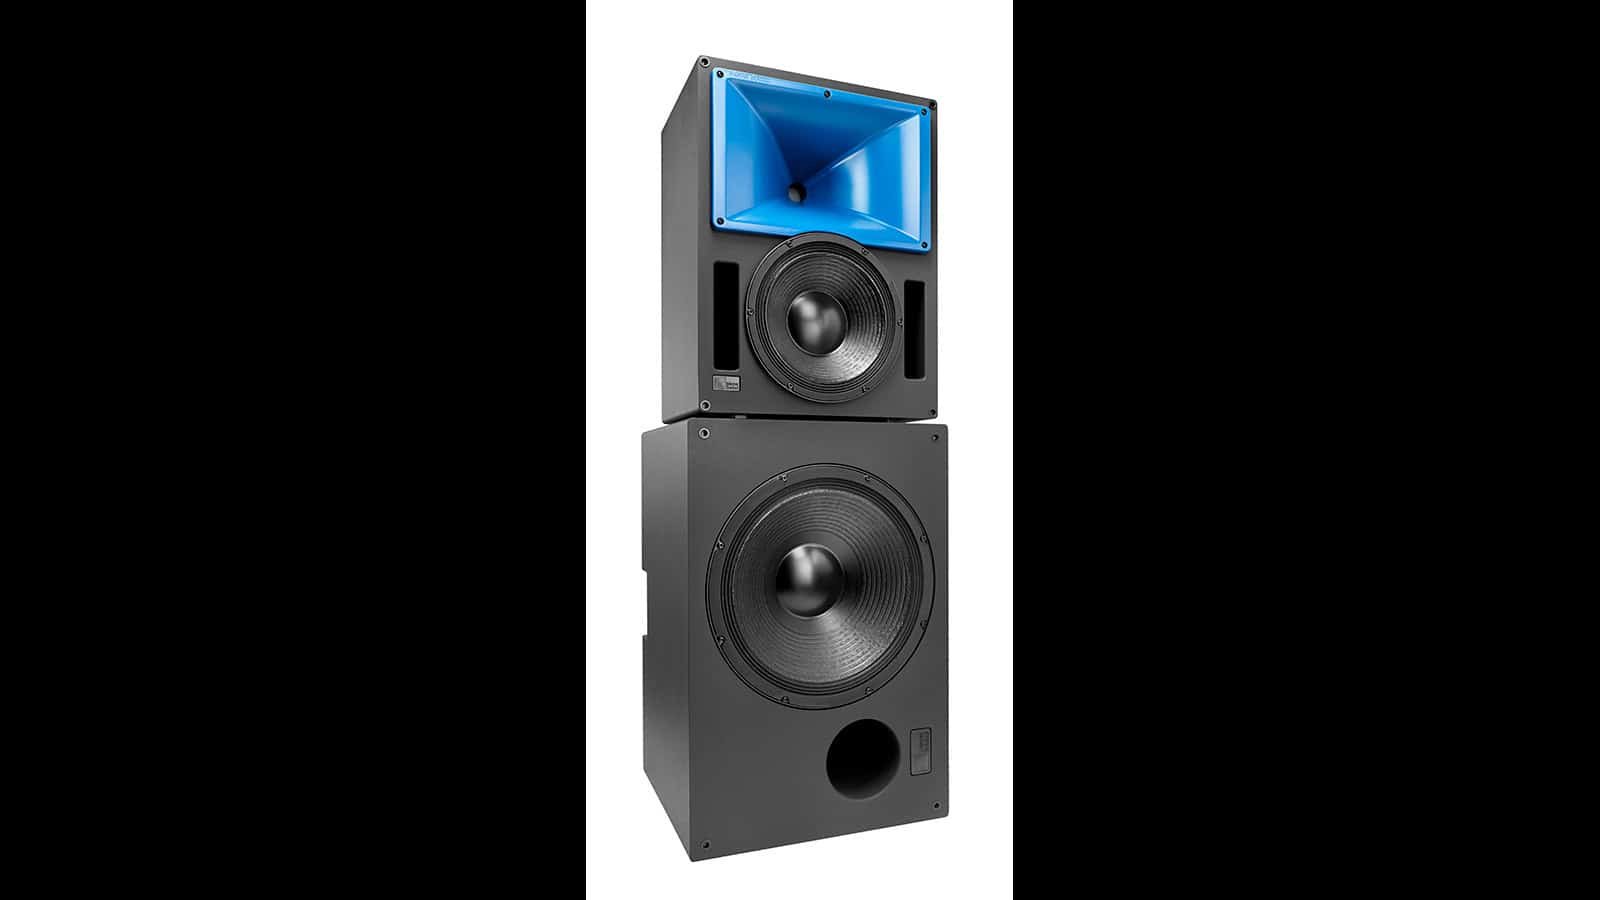 Product Shot of the Bluehorn System